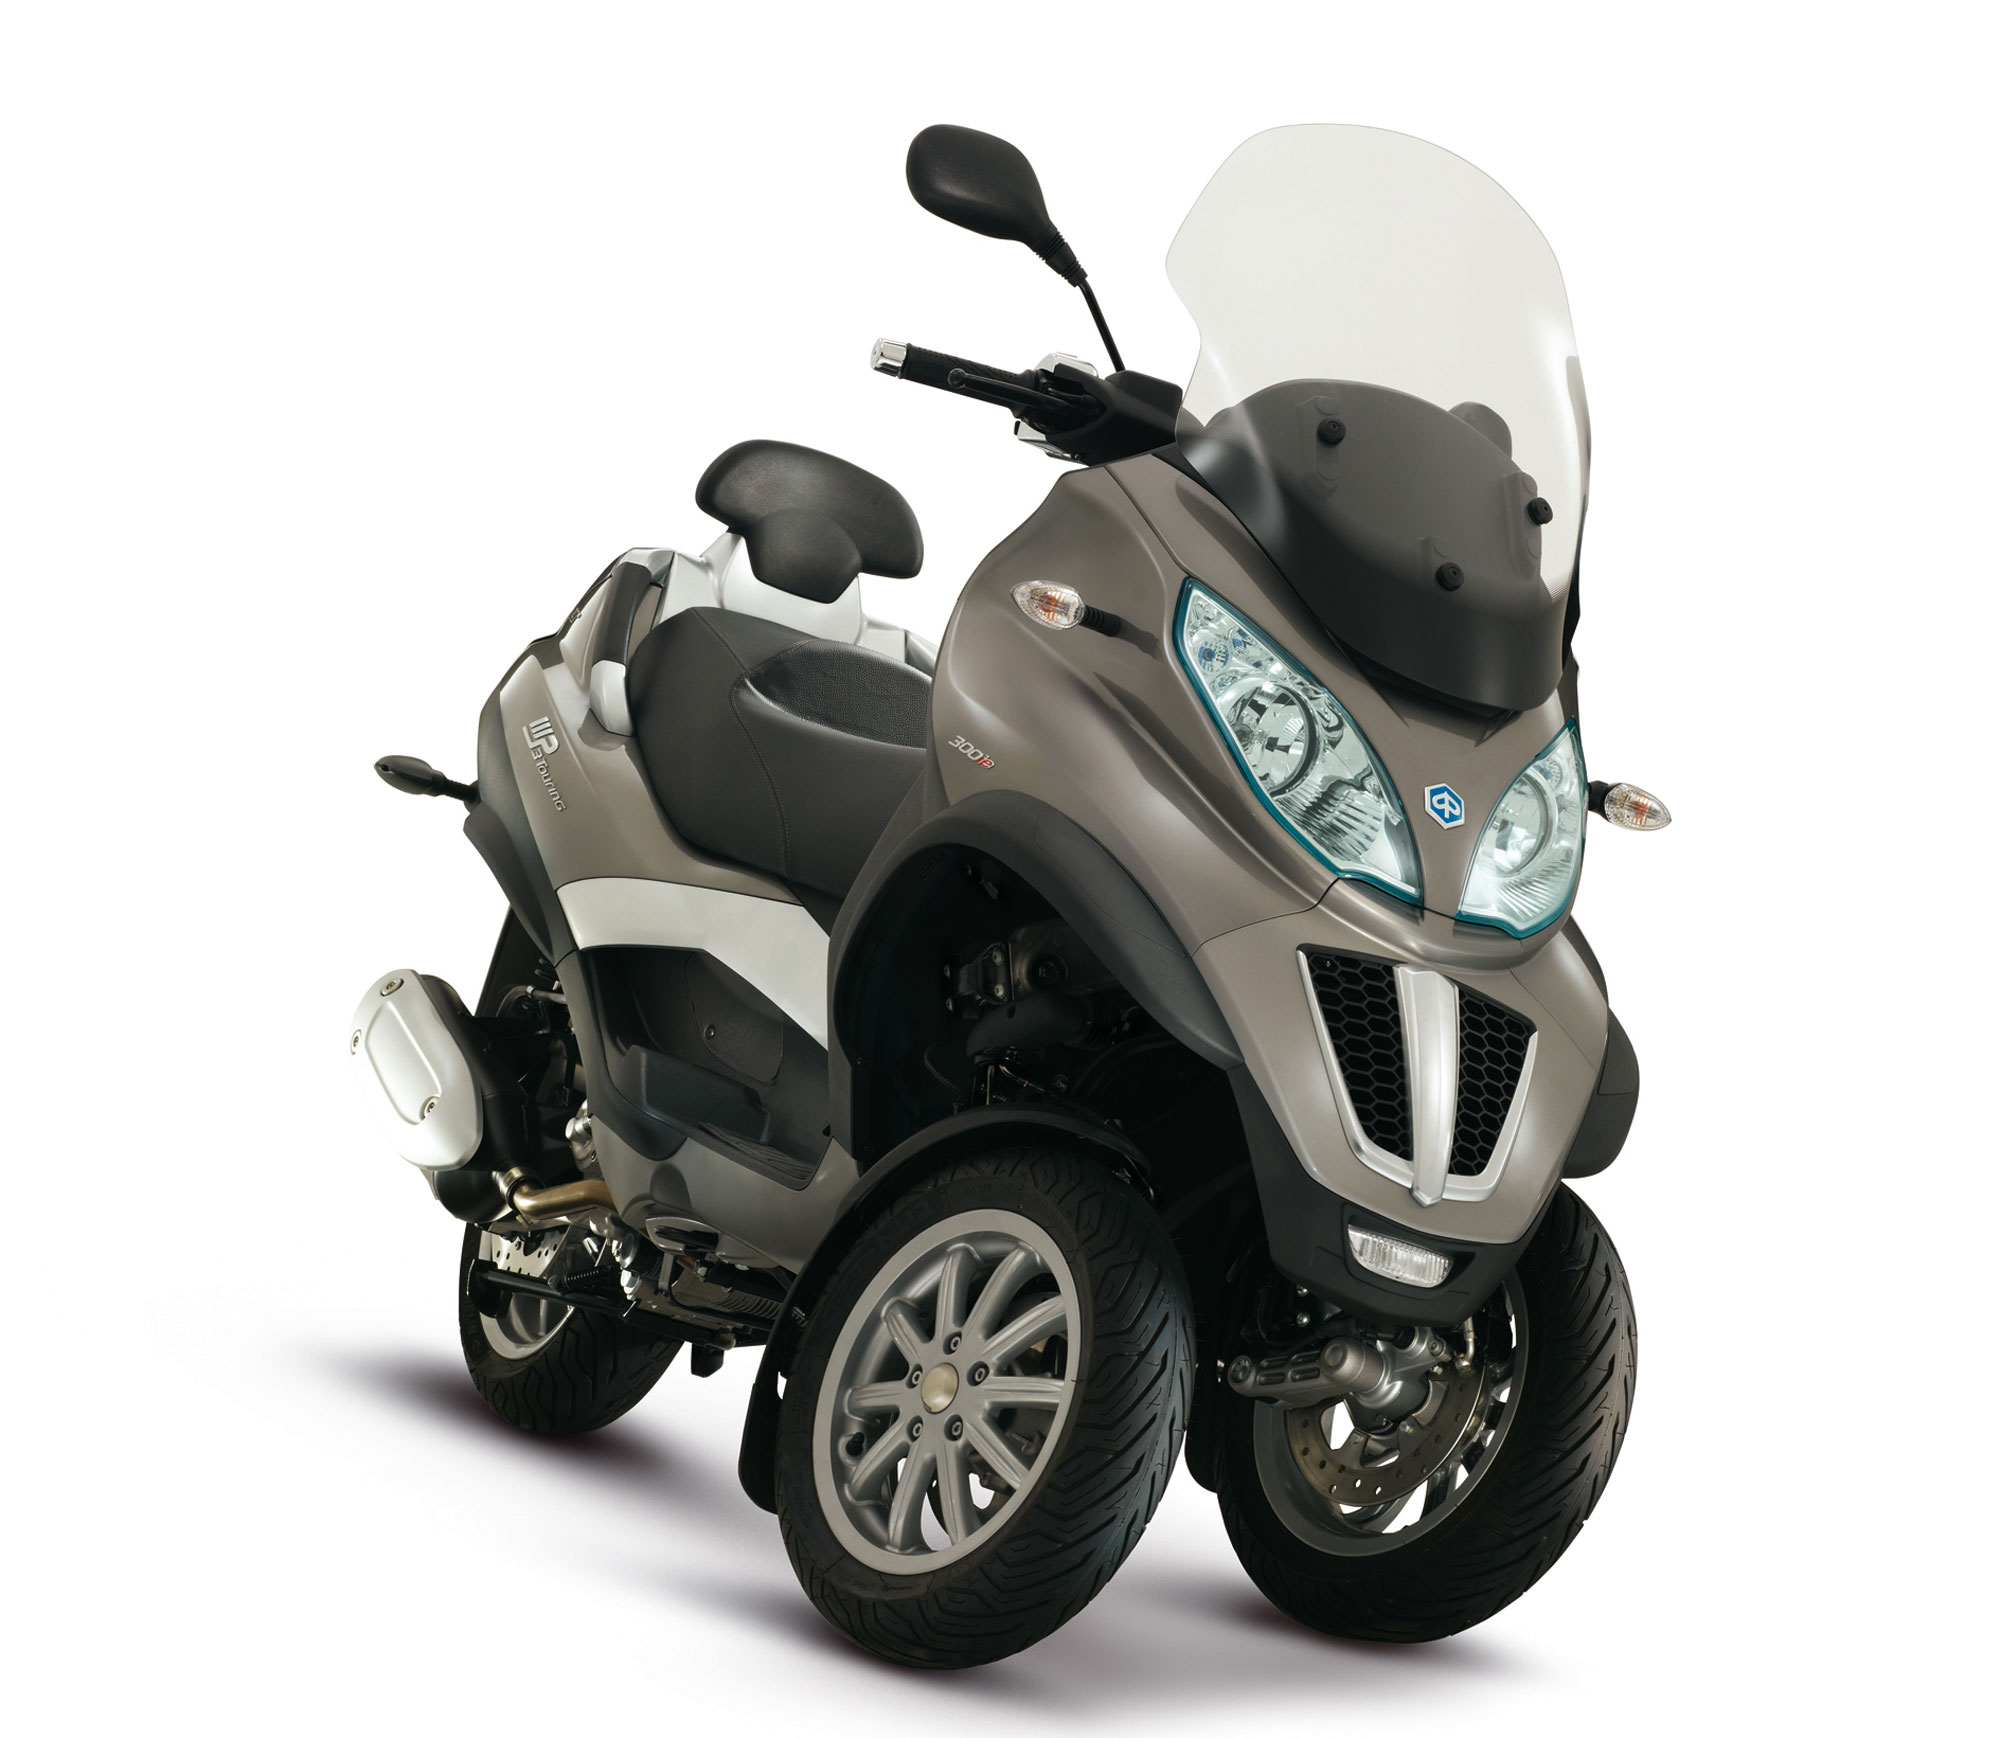 piaggio mp3 touring lt 300 i e specs 2011 2012 autoevolution. Black Bedroom Furniture Sets. Home Design Ideas